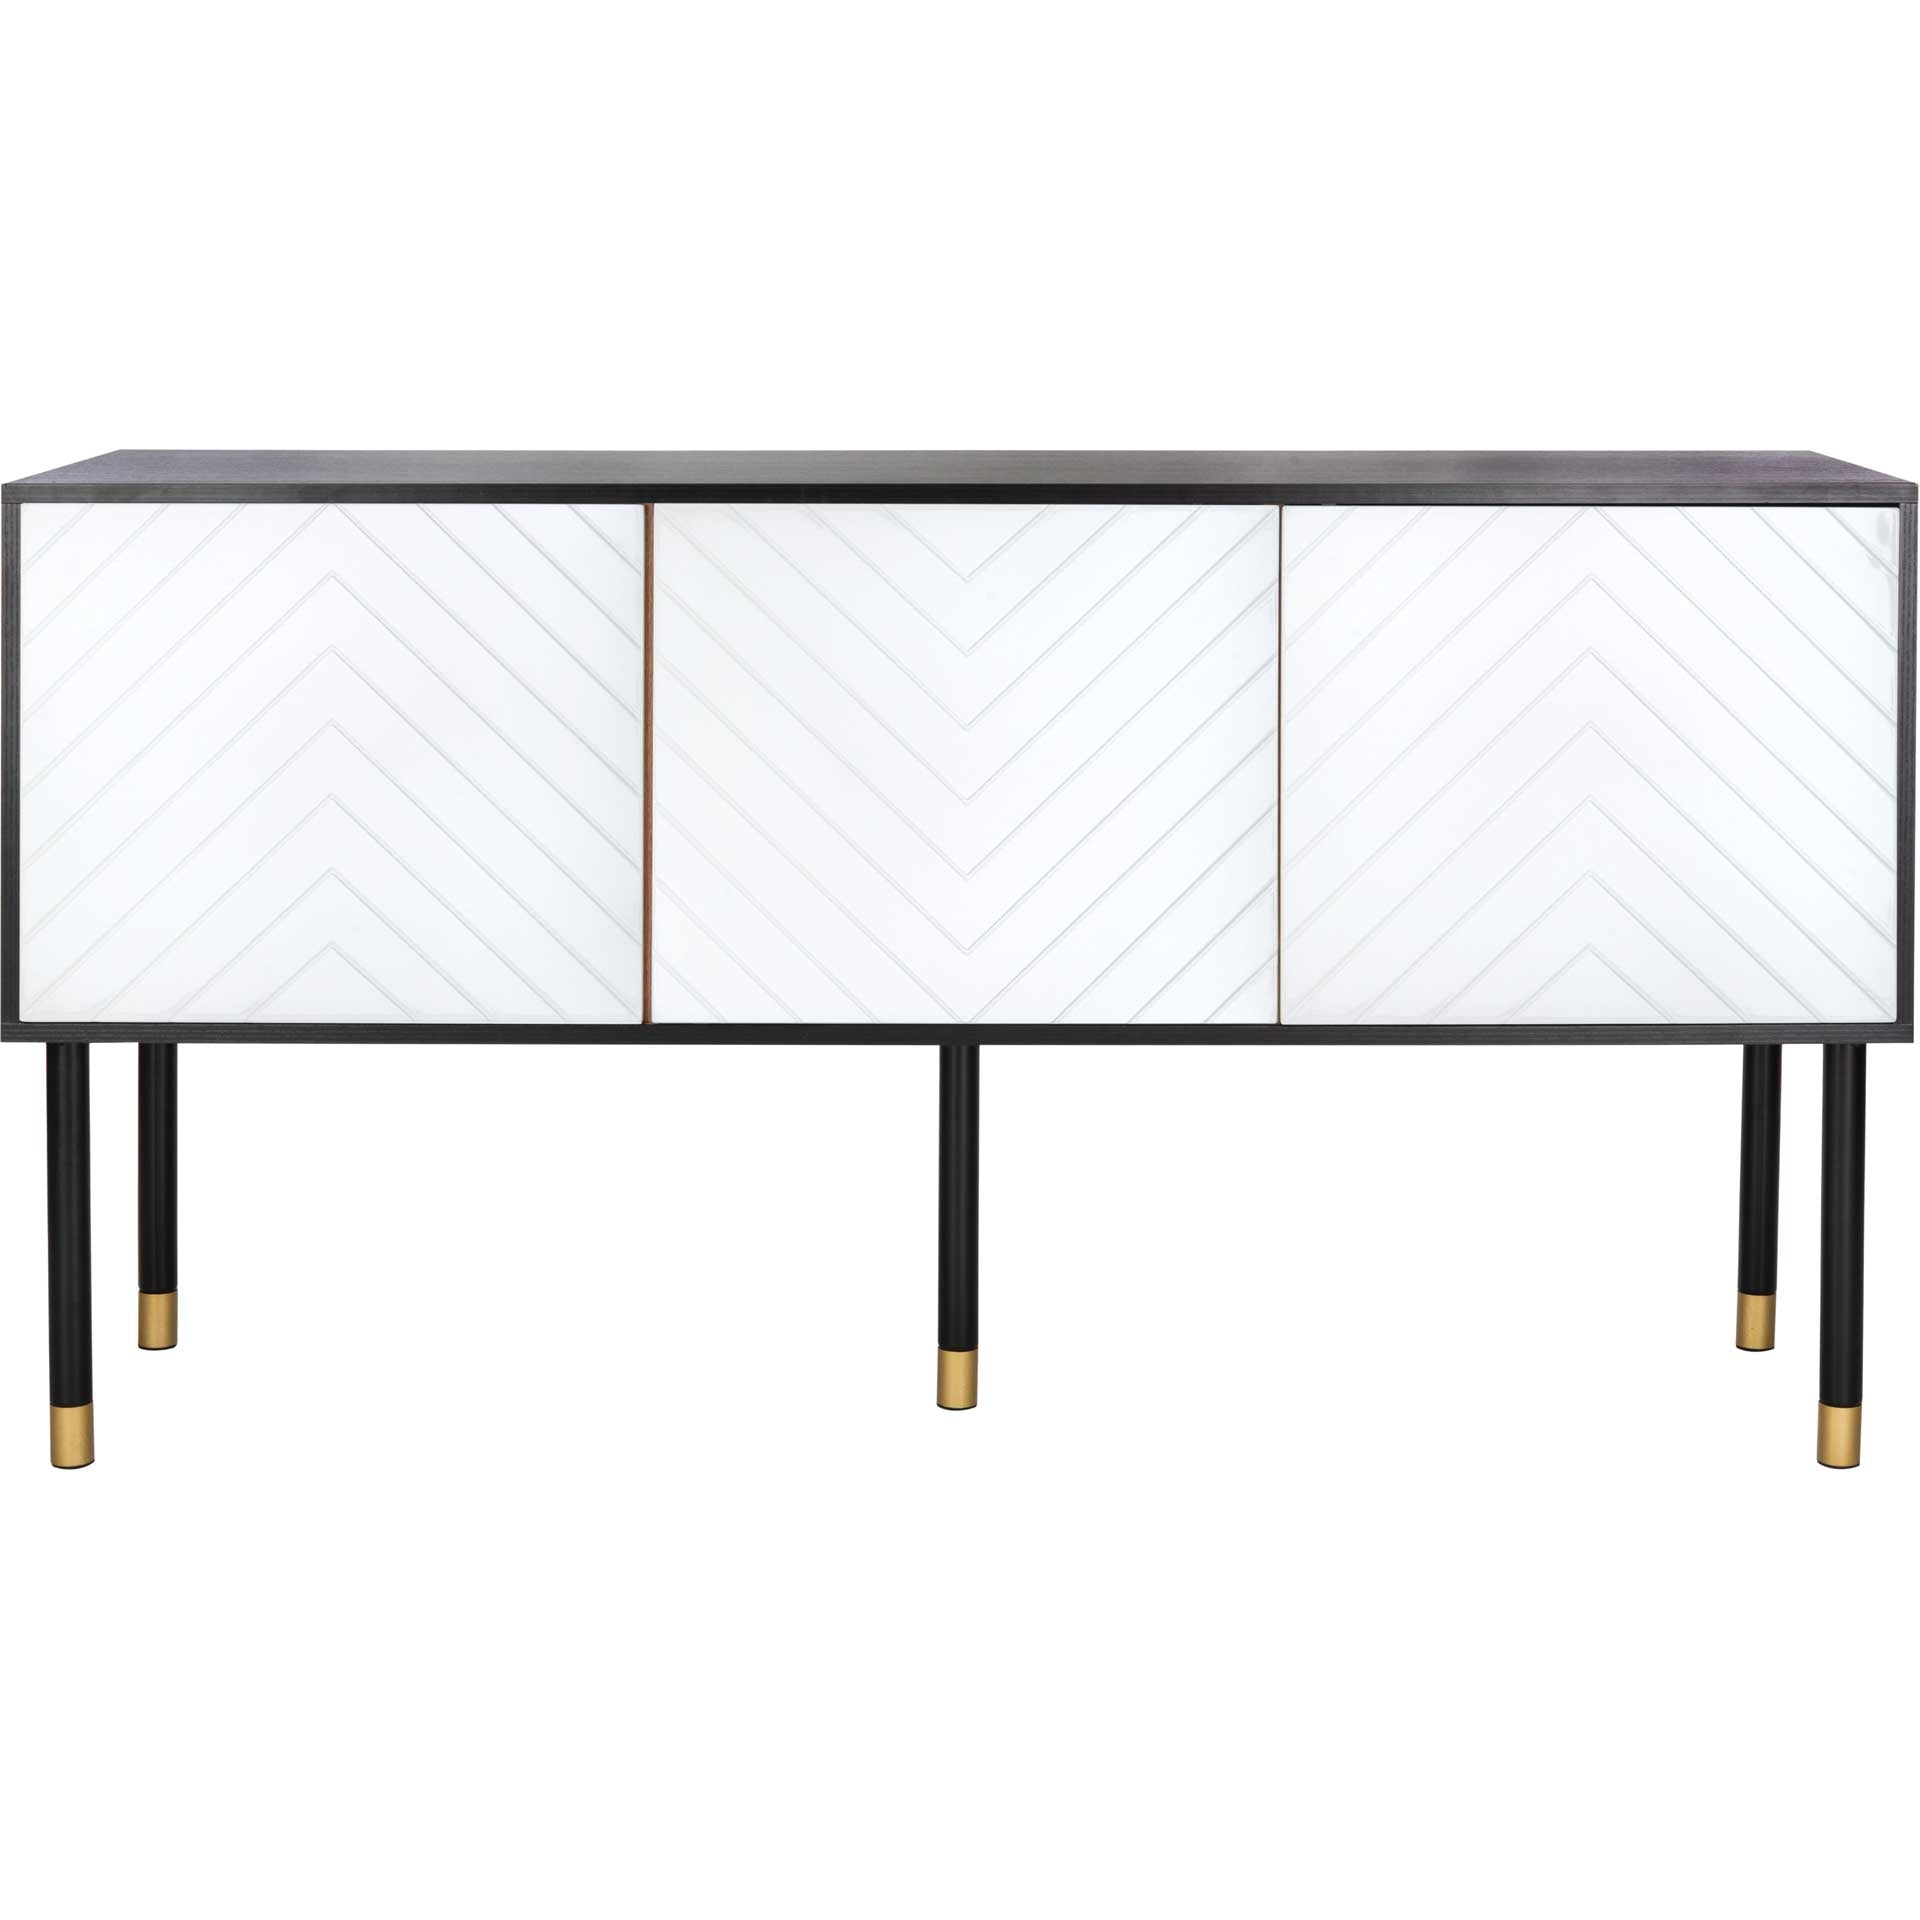 Oaklee TV Stand Black/White/Gold